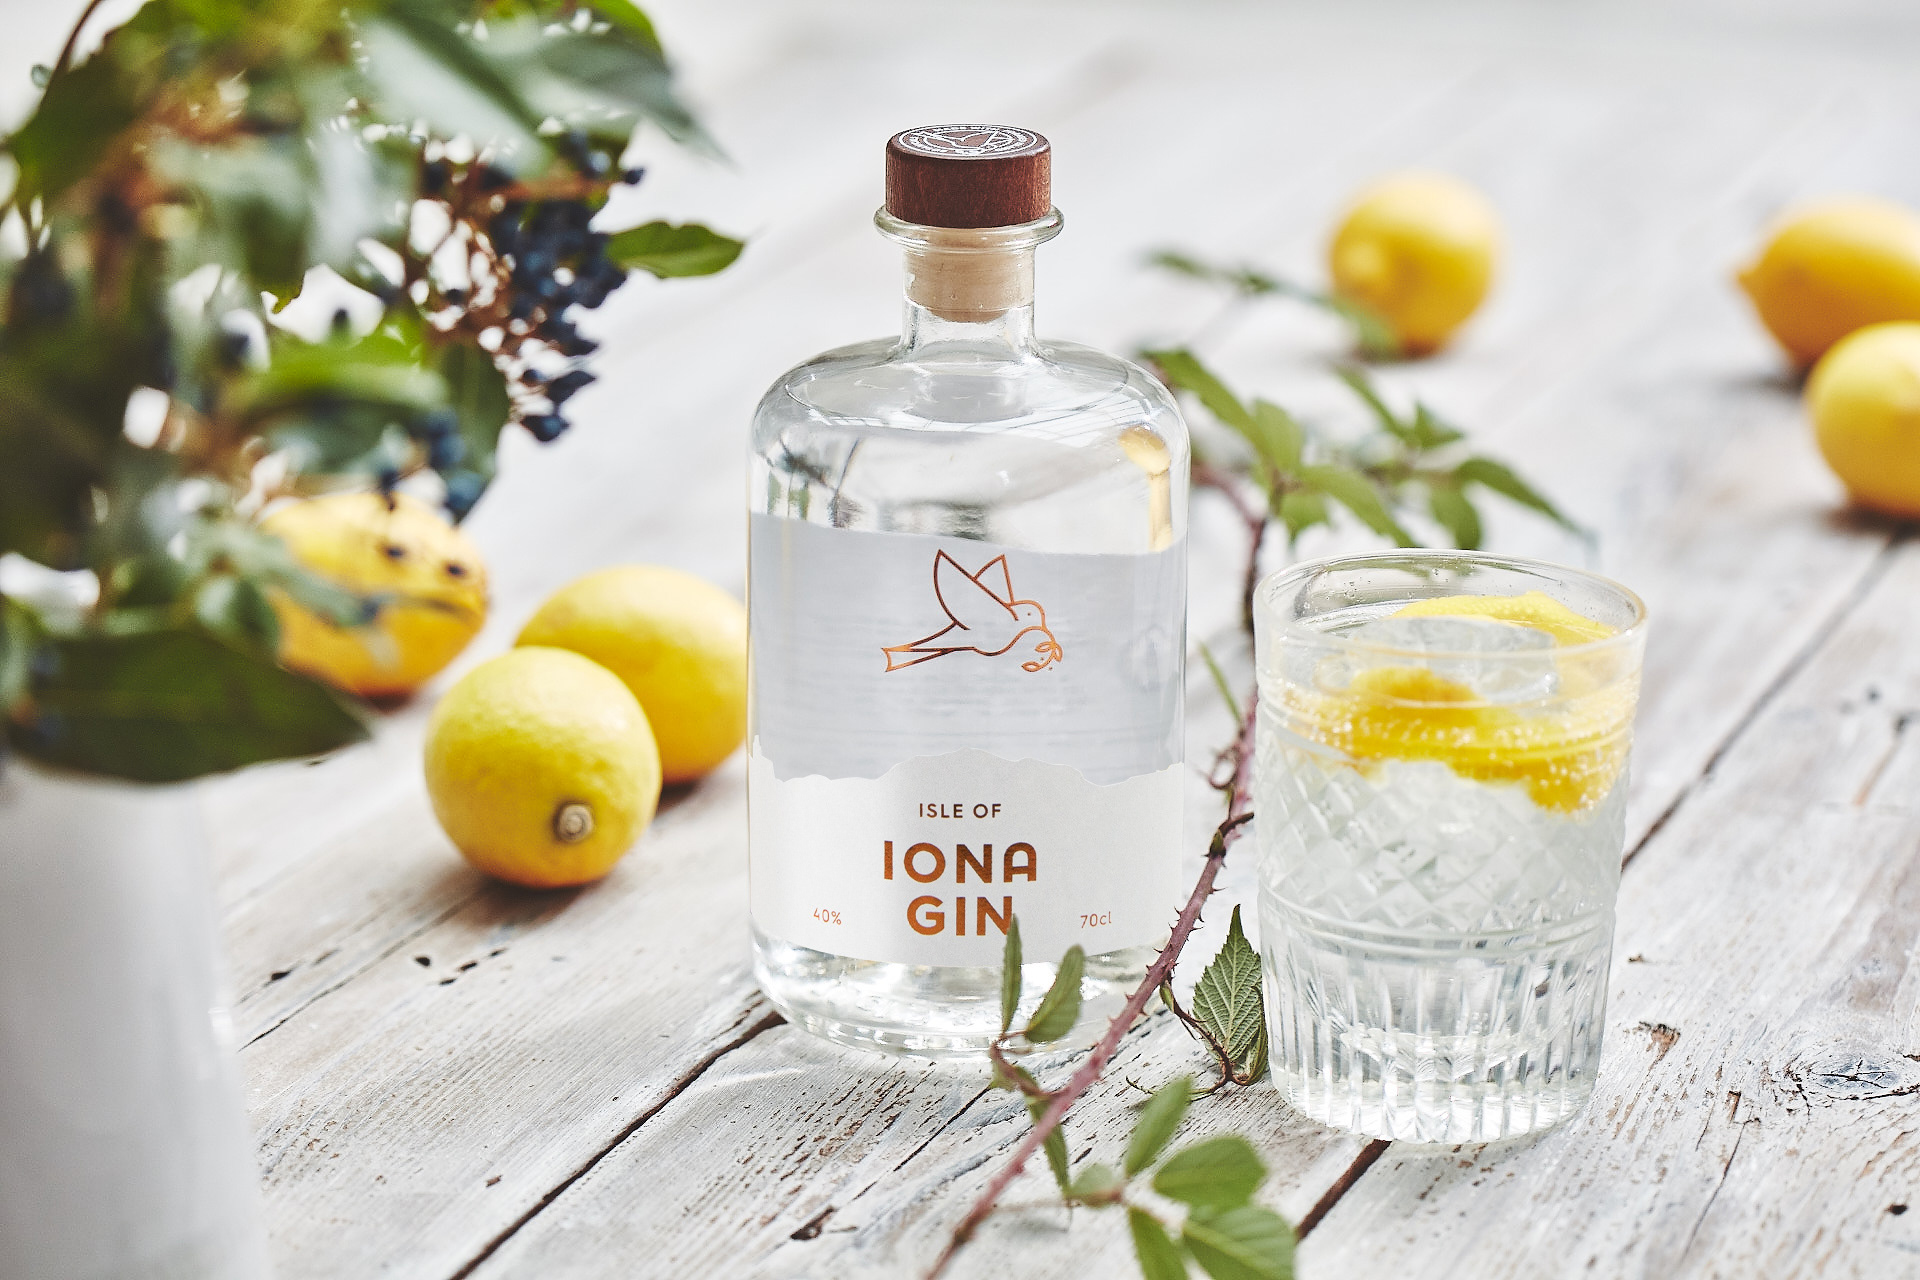 Brand and Packaging Design for Isle of Iona Gin by My Creative